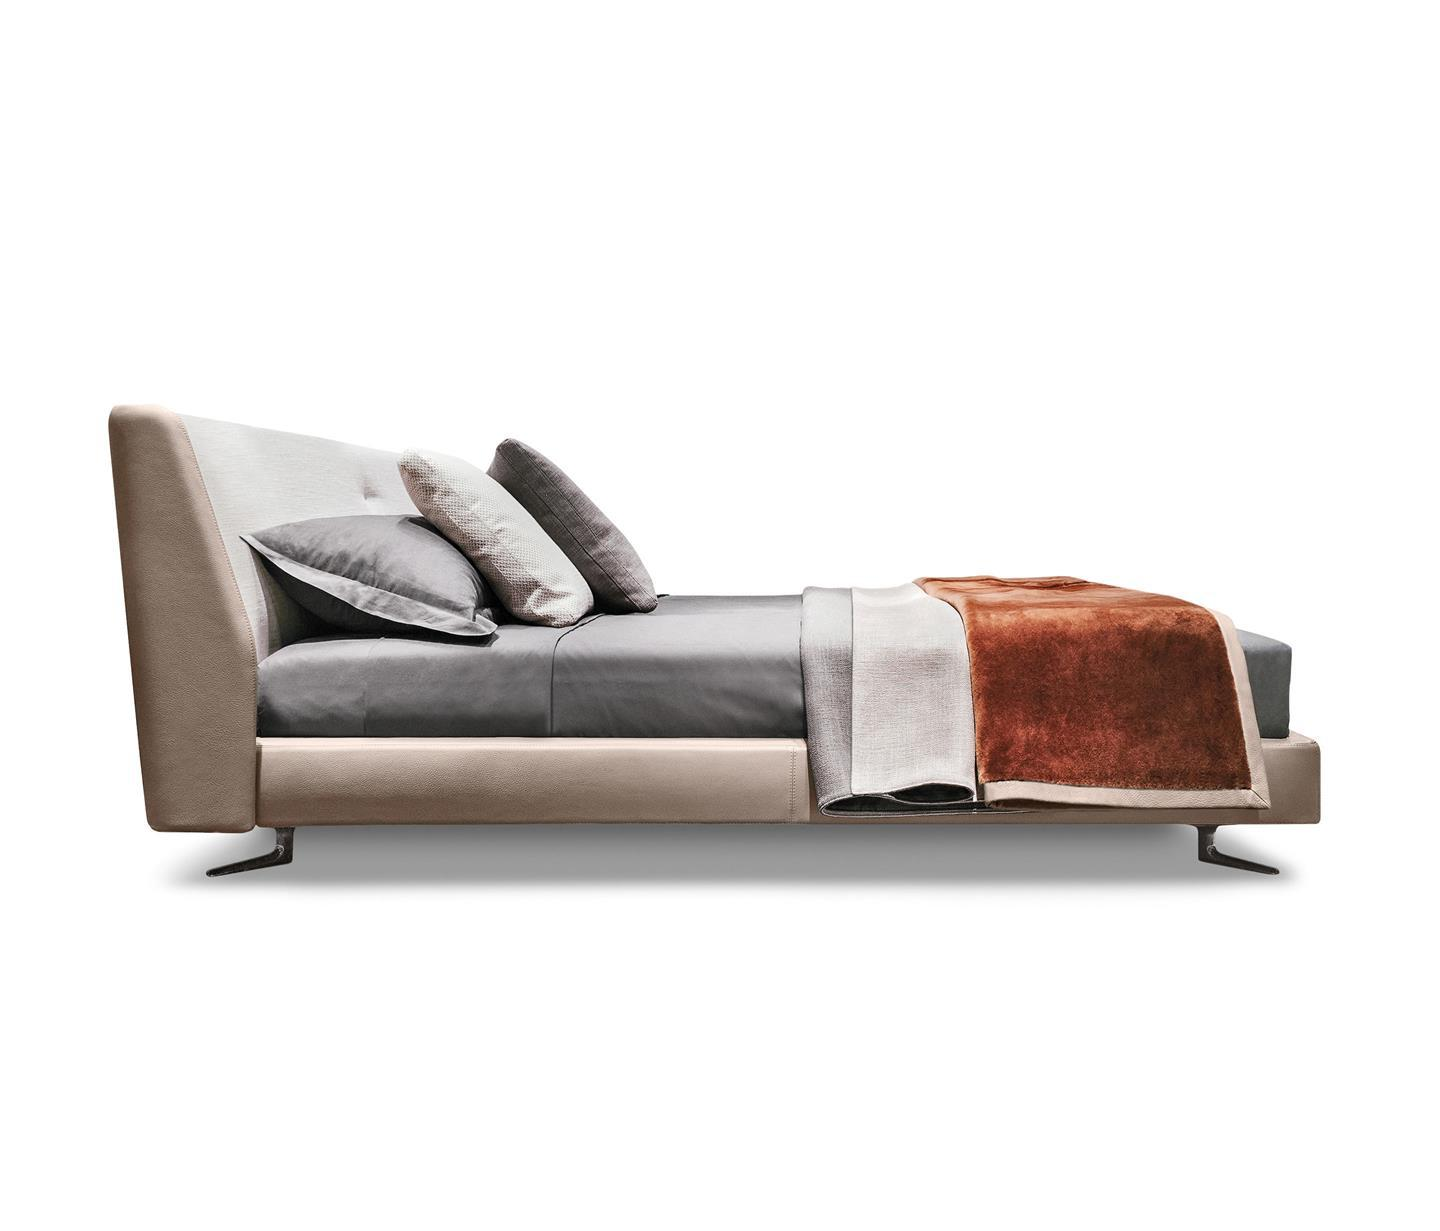 spencer-bed-letto-01-b-1.jpg